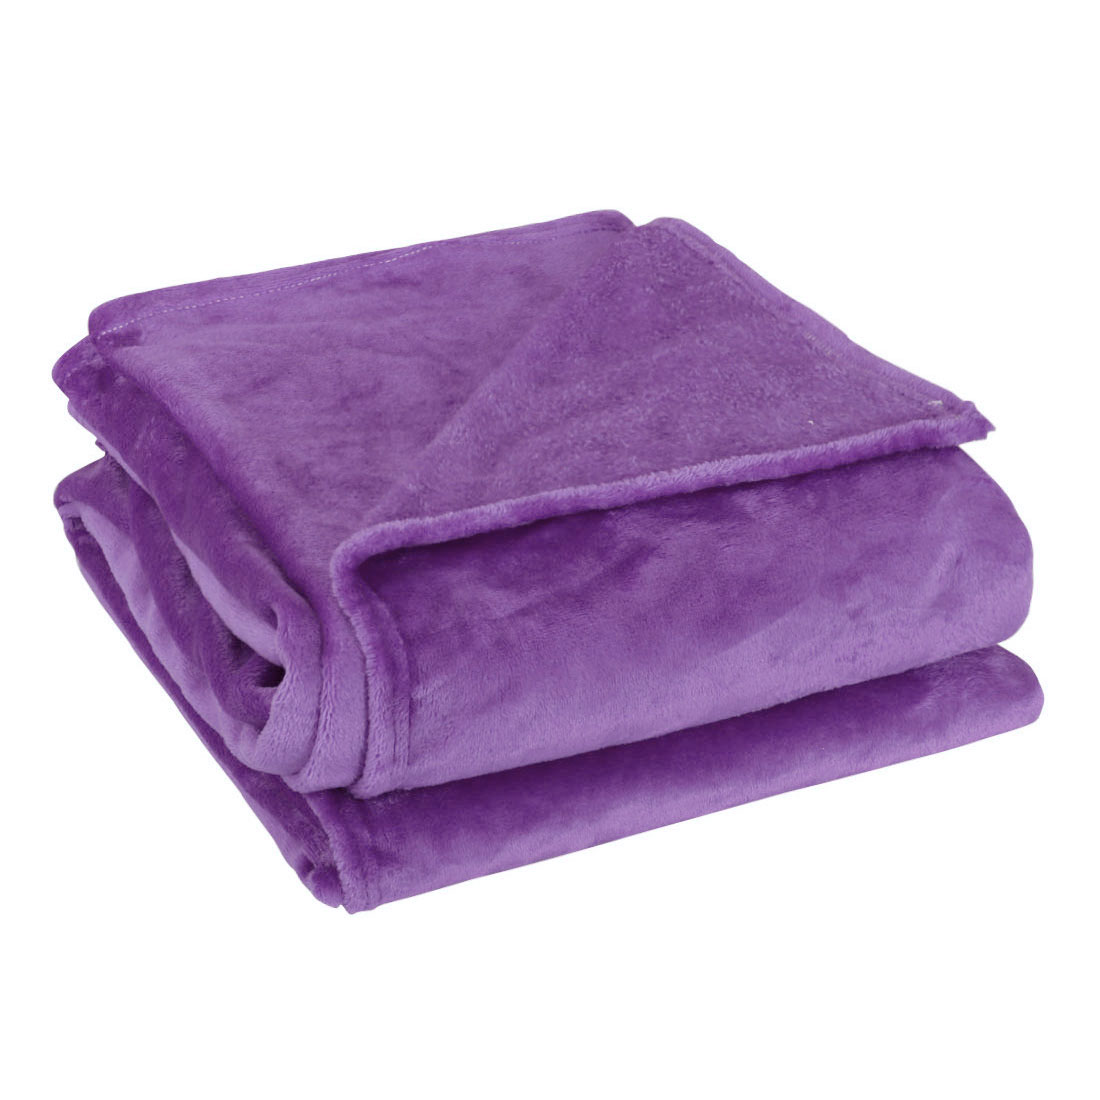 Full Size Home Bedroom Bed Sofa Warm Plush Couch Throws Blanket Soft Dark Purple 180 x 200cm